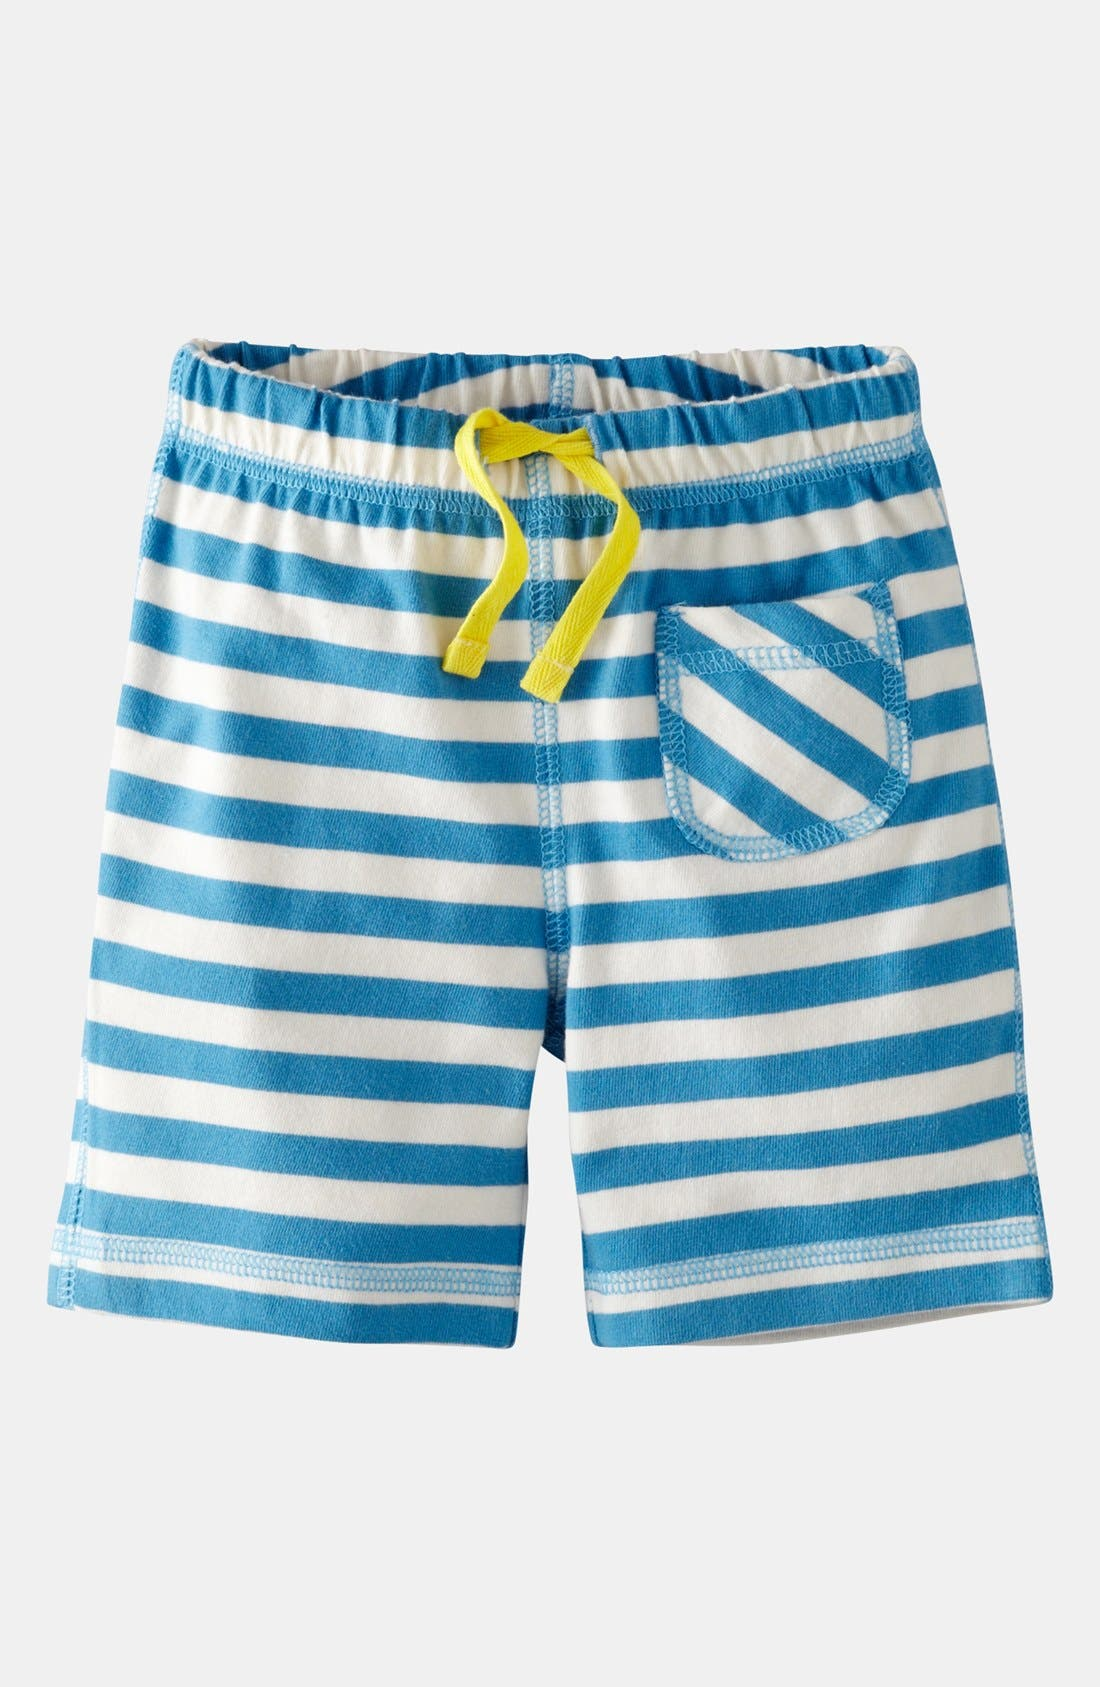 Alternate Image 1 Selected - Mini Boden Jersey Shorts (Baby)